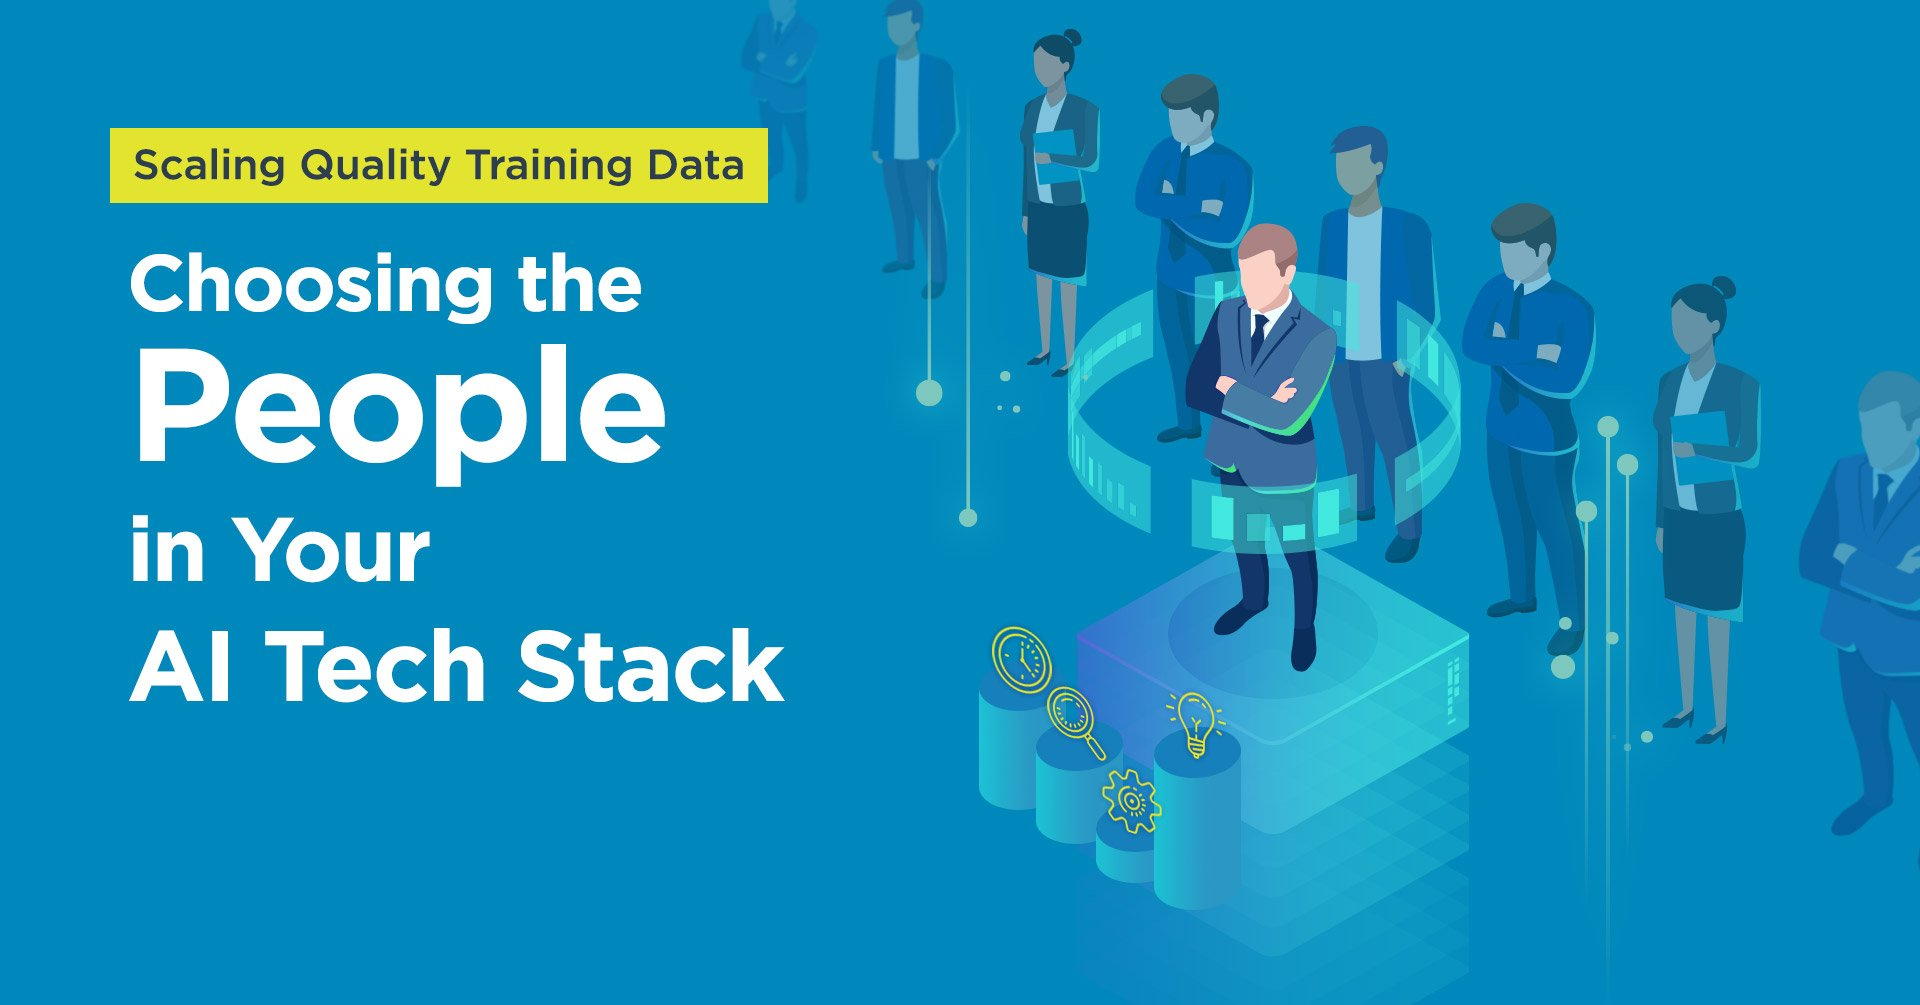 Scaling Quality Training Data - Choosing the People in Your AI Tech Stack